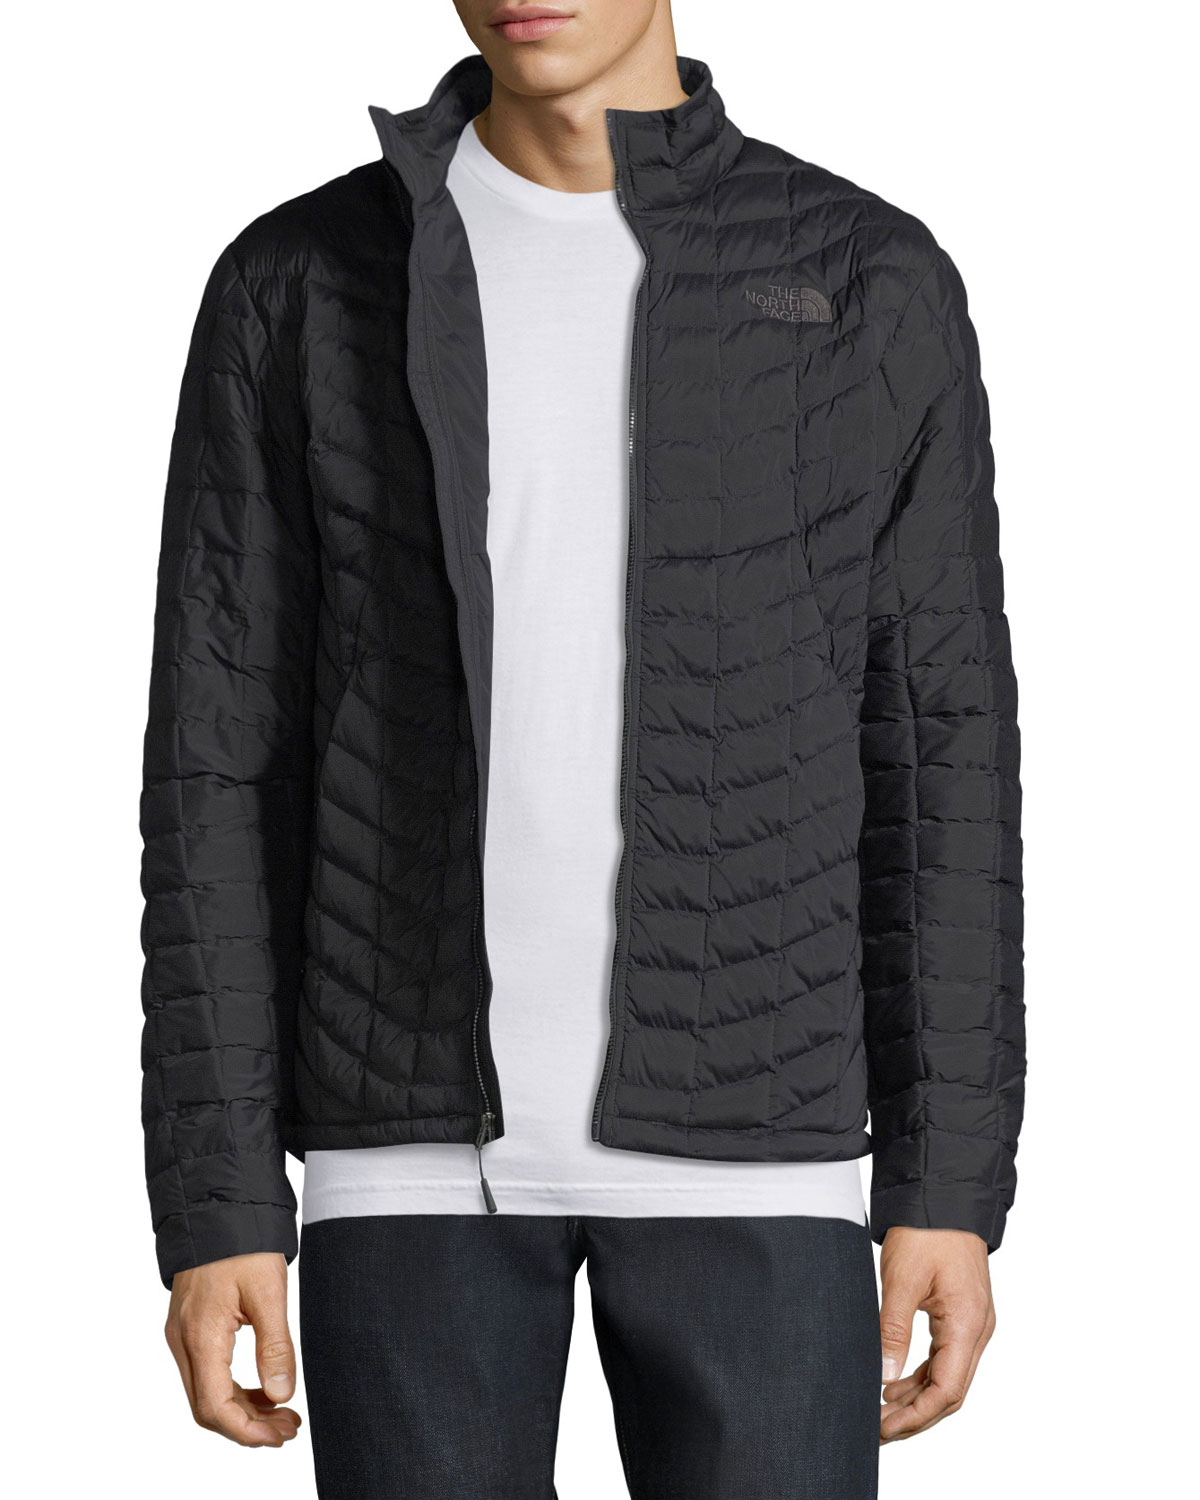 8807deefe4 The North Face Stretch ThermoBall Jacket